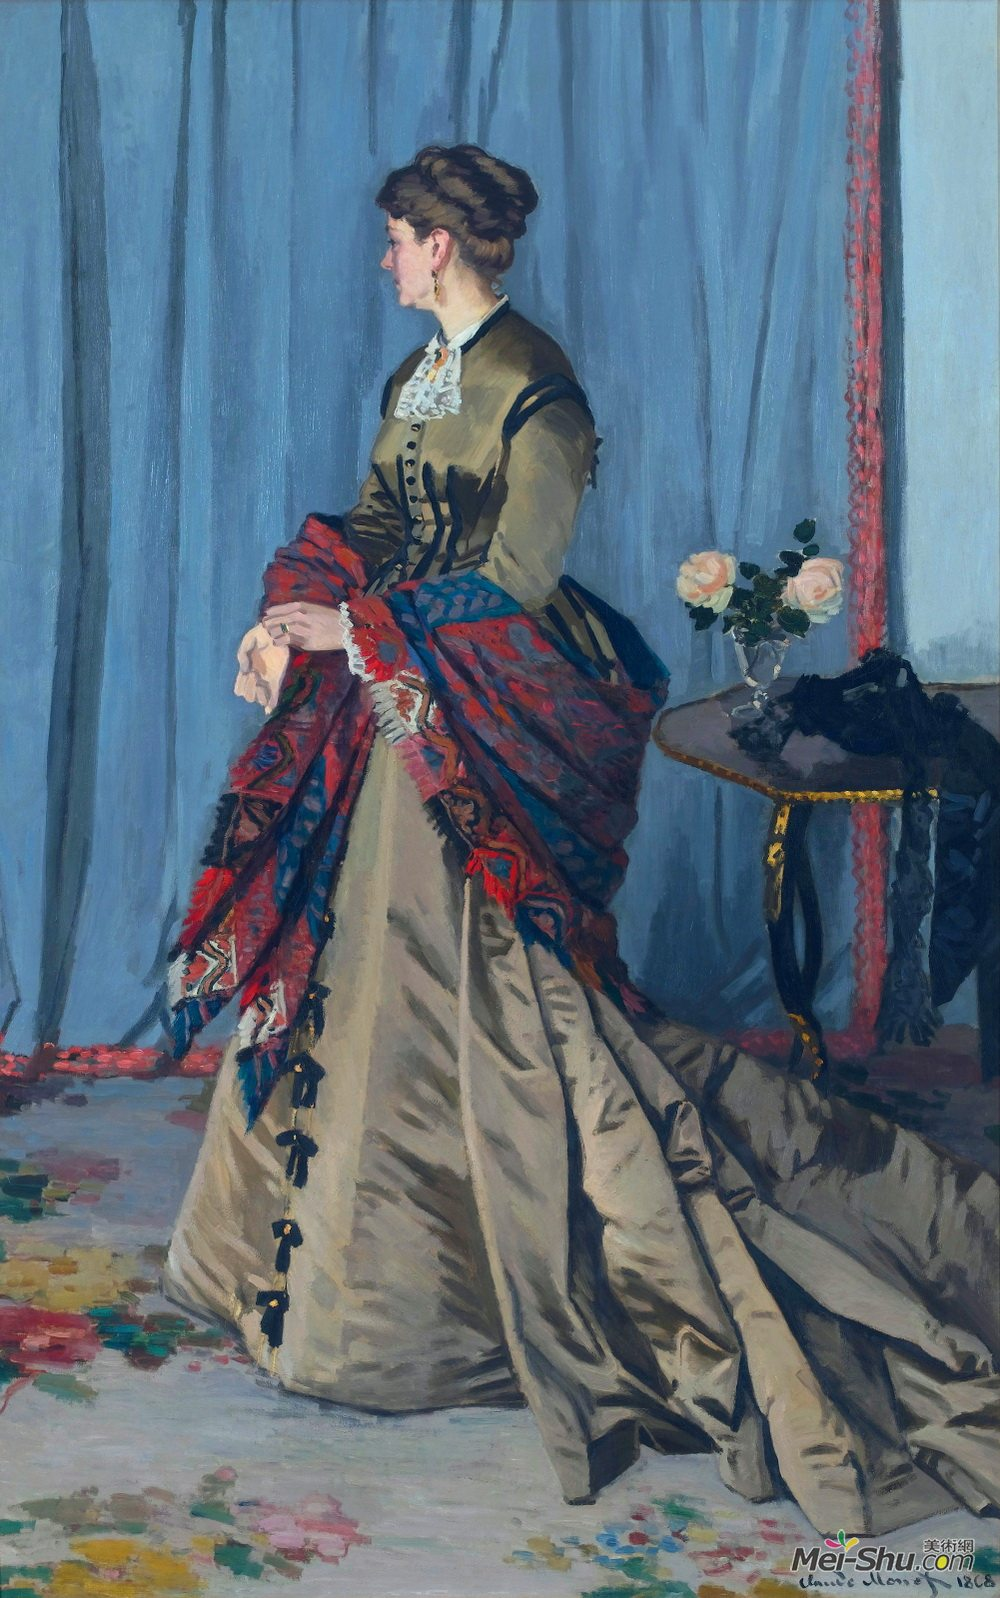 克劳德·莫奈(Claude Monet)高清作品《Portrait of Madame Gaudibert》